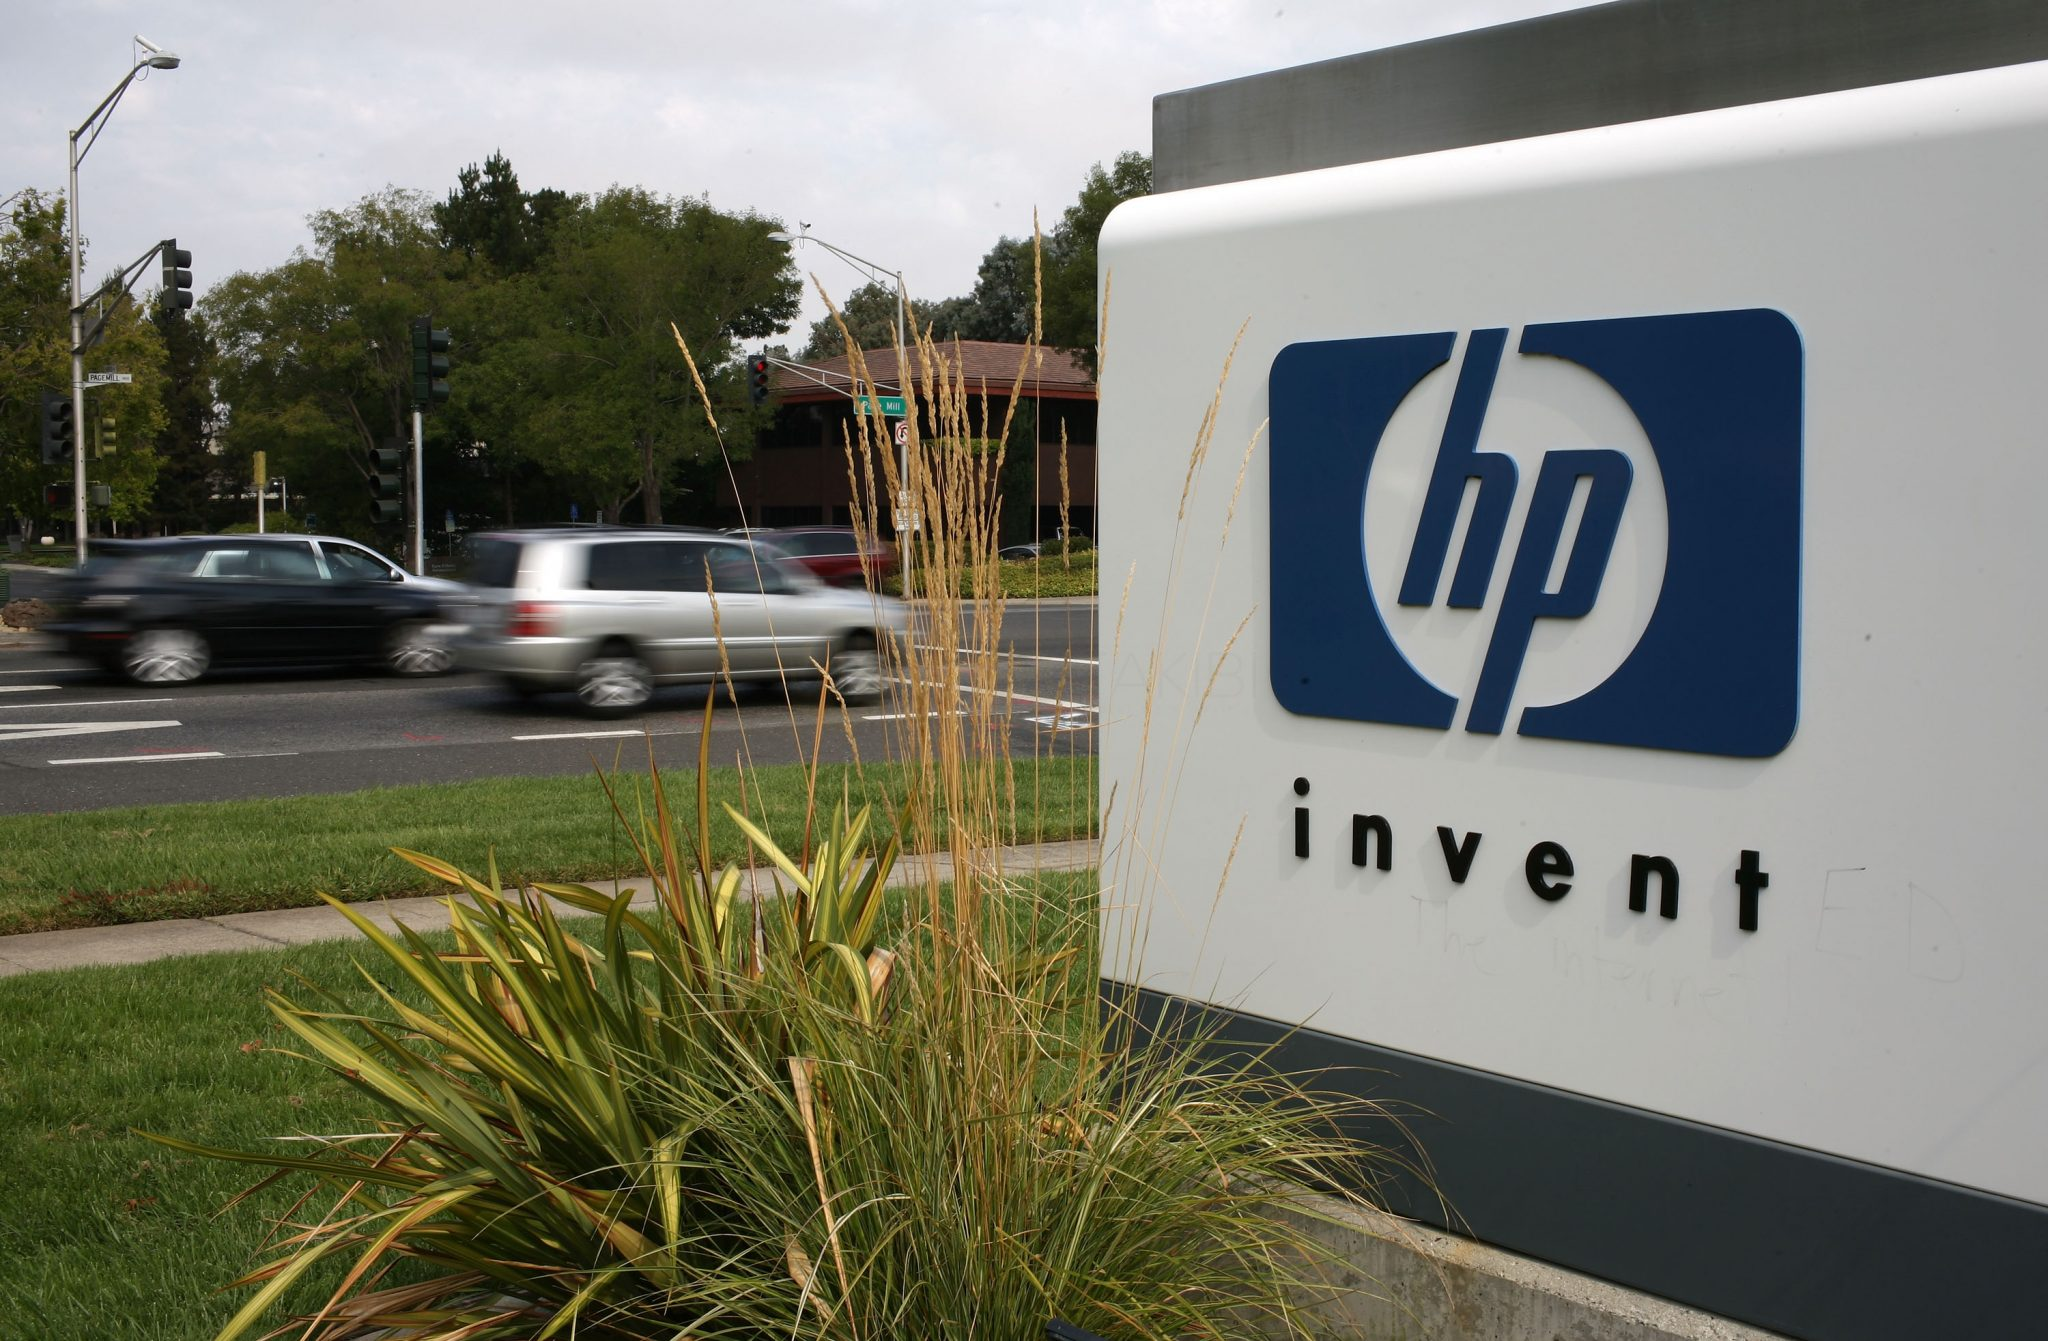 PALO ALTO, CA - SEPTEMBER 16: The HP logo is displayed on the entrance to the Hewlett-Packard Headquarters September 16, 2008 in Palo Alto, California. Hewlett-Packard announced on Monday that it is planning to cut 24,600 jobs worldwide over the next three years after its purchase of Electronic Data Systems for $13.9 billion. (Photo by Justin Sullivan/Getty Images)